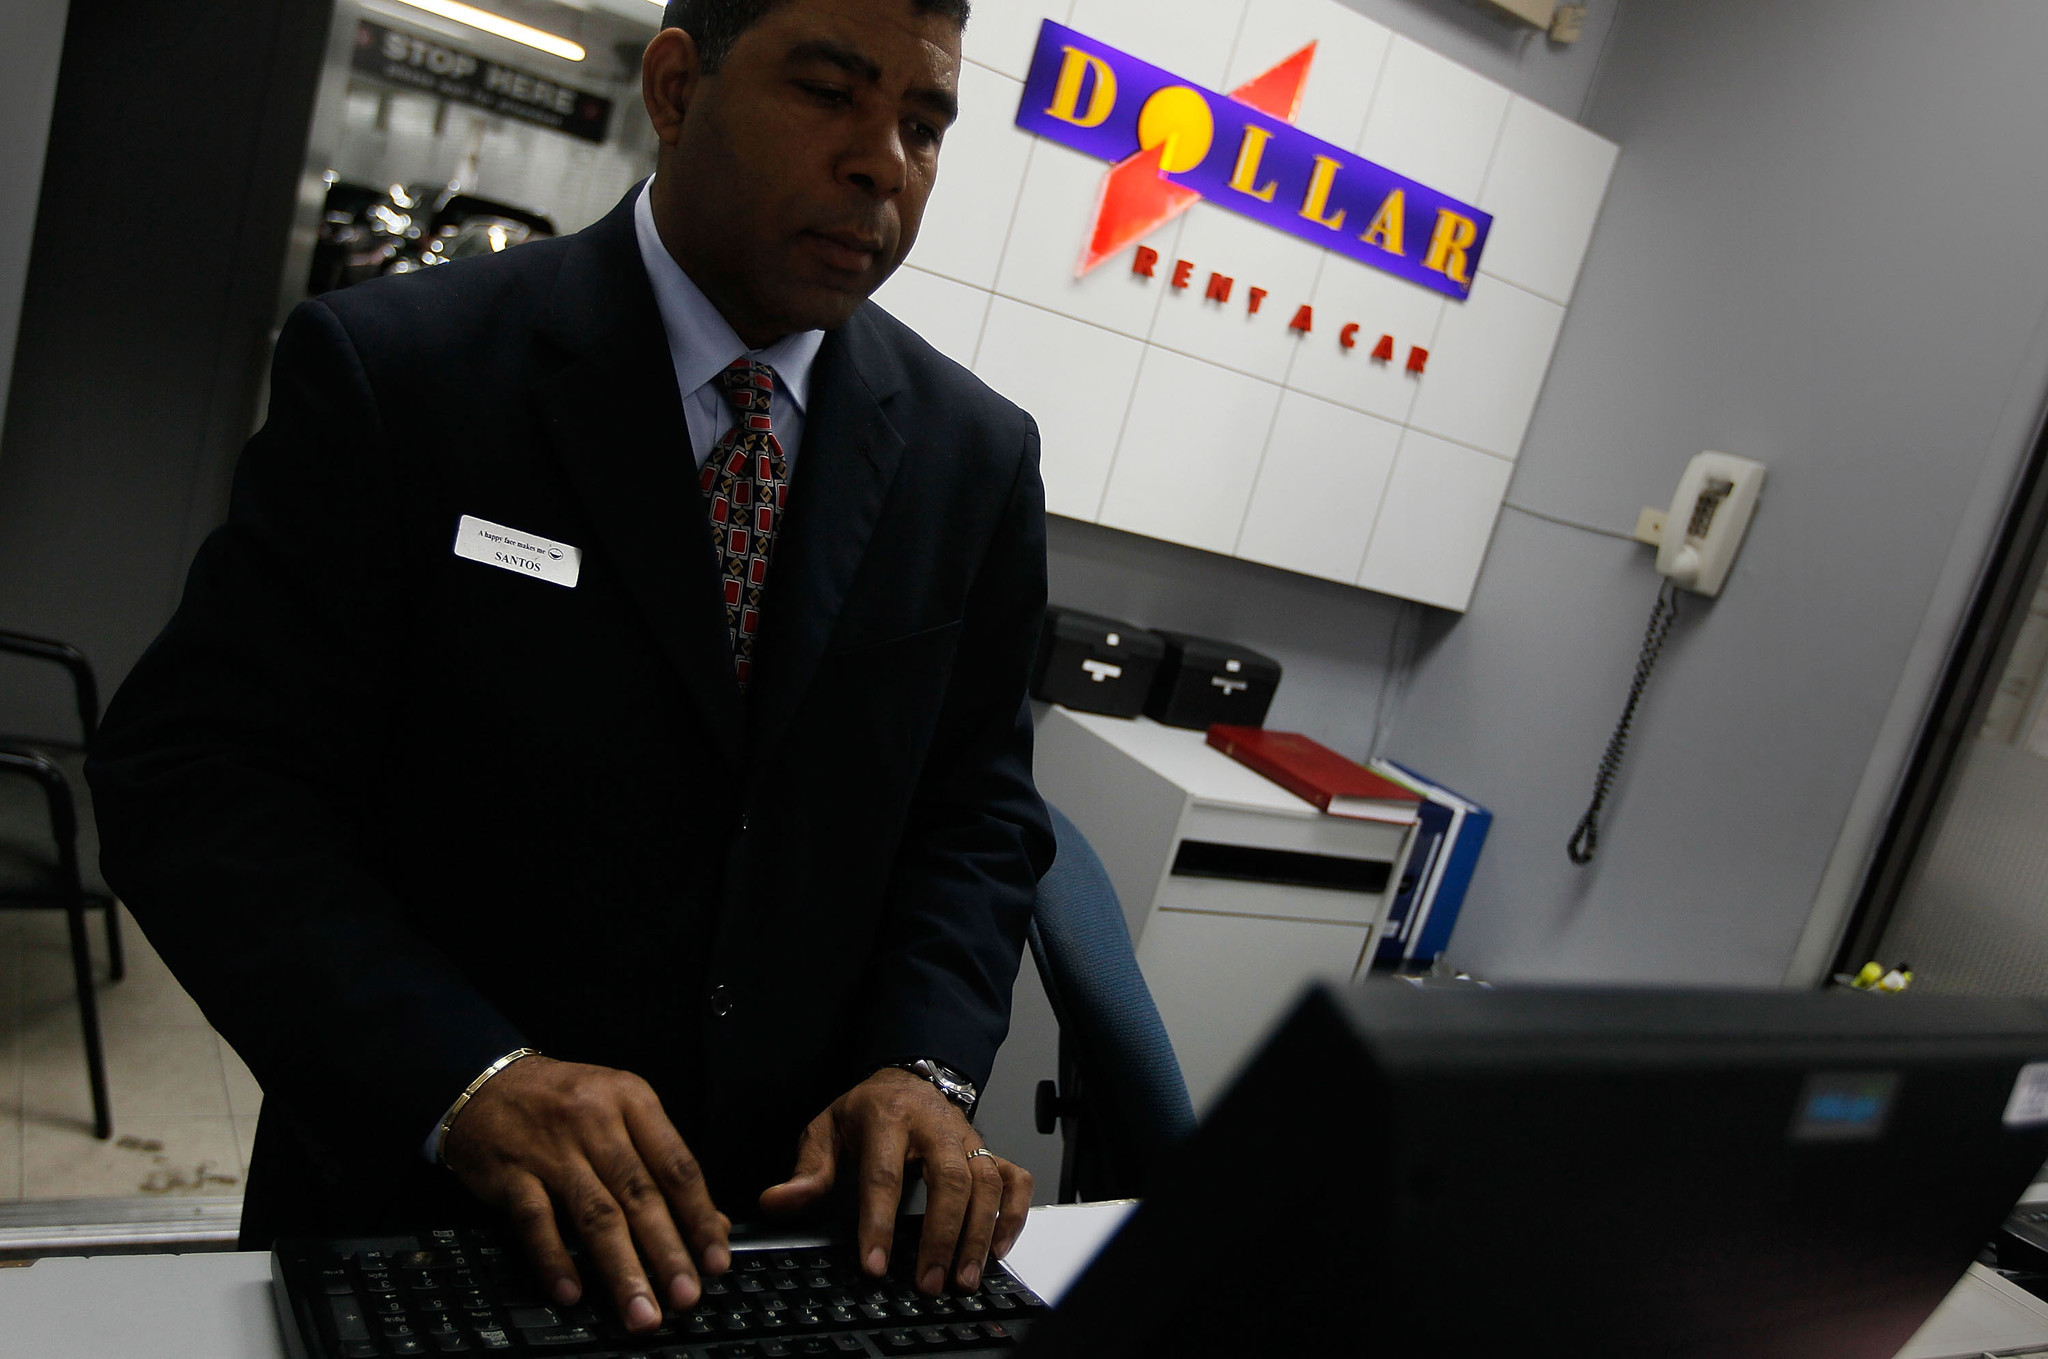 Dollar Said I Was A 'no-show' And Took My Money